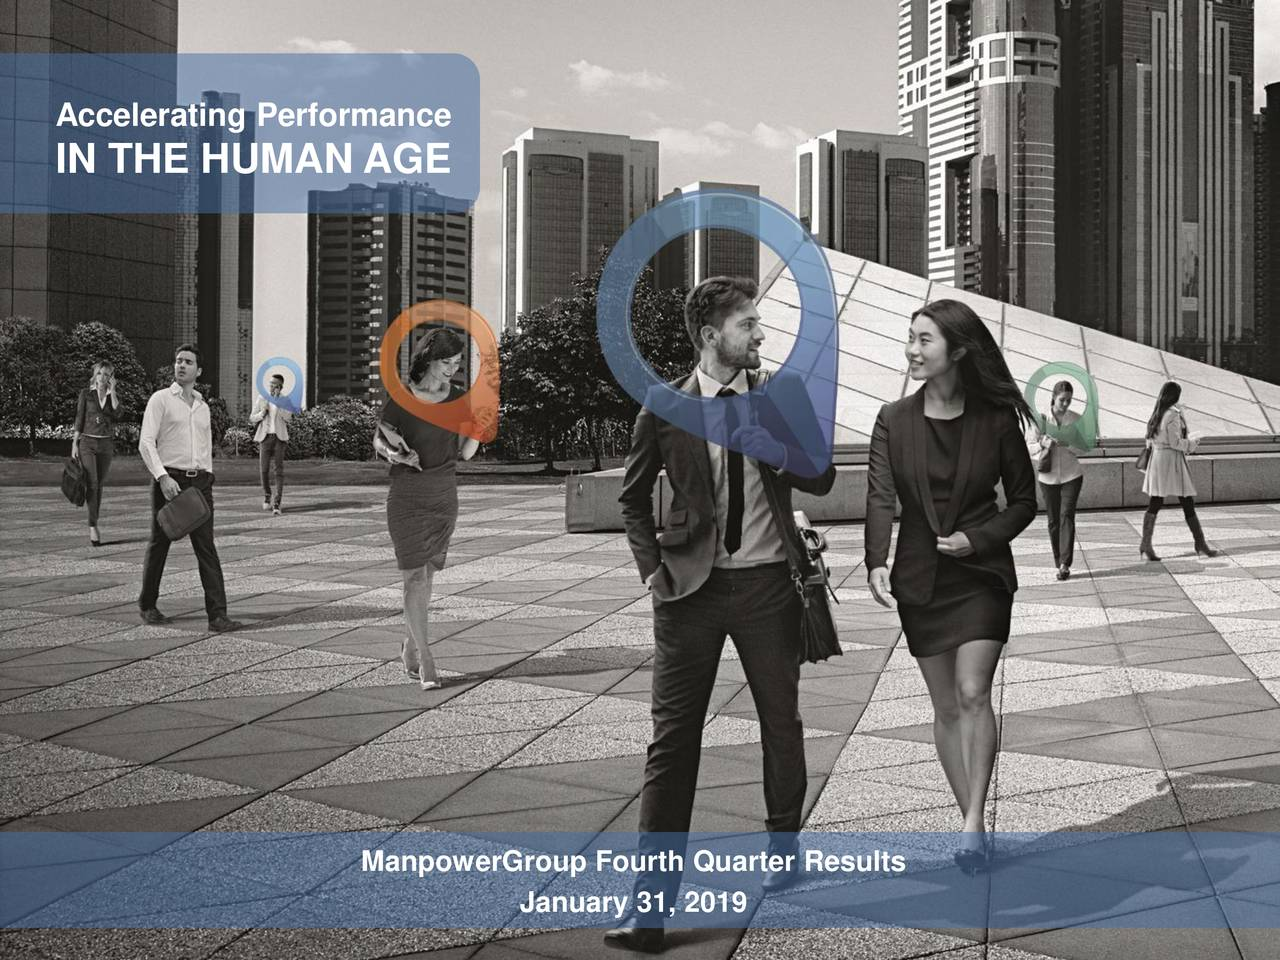 Accelerating Performance IN THE HUMAN AGE ManpowerGroup Fourth Quarter Results January 31, 2019 Corporate Governance Overview